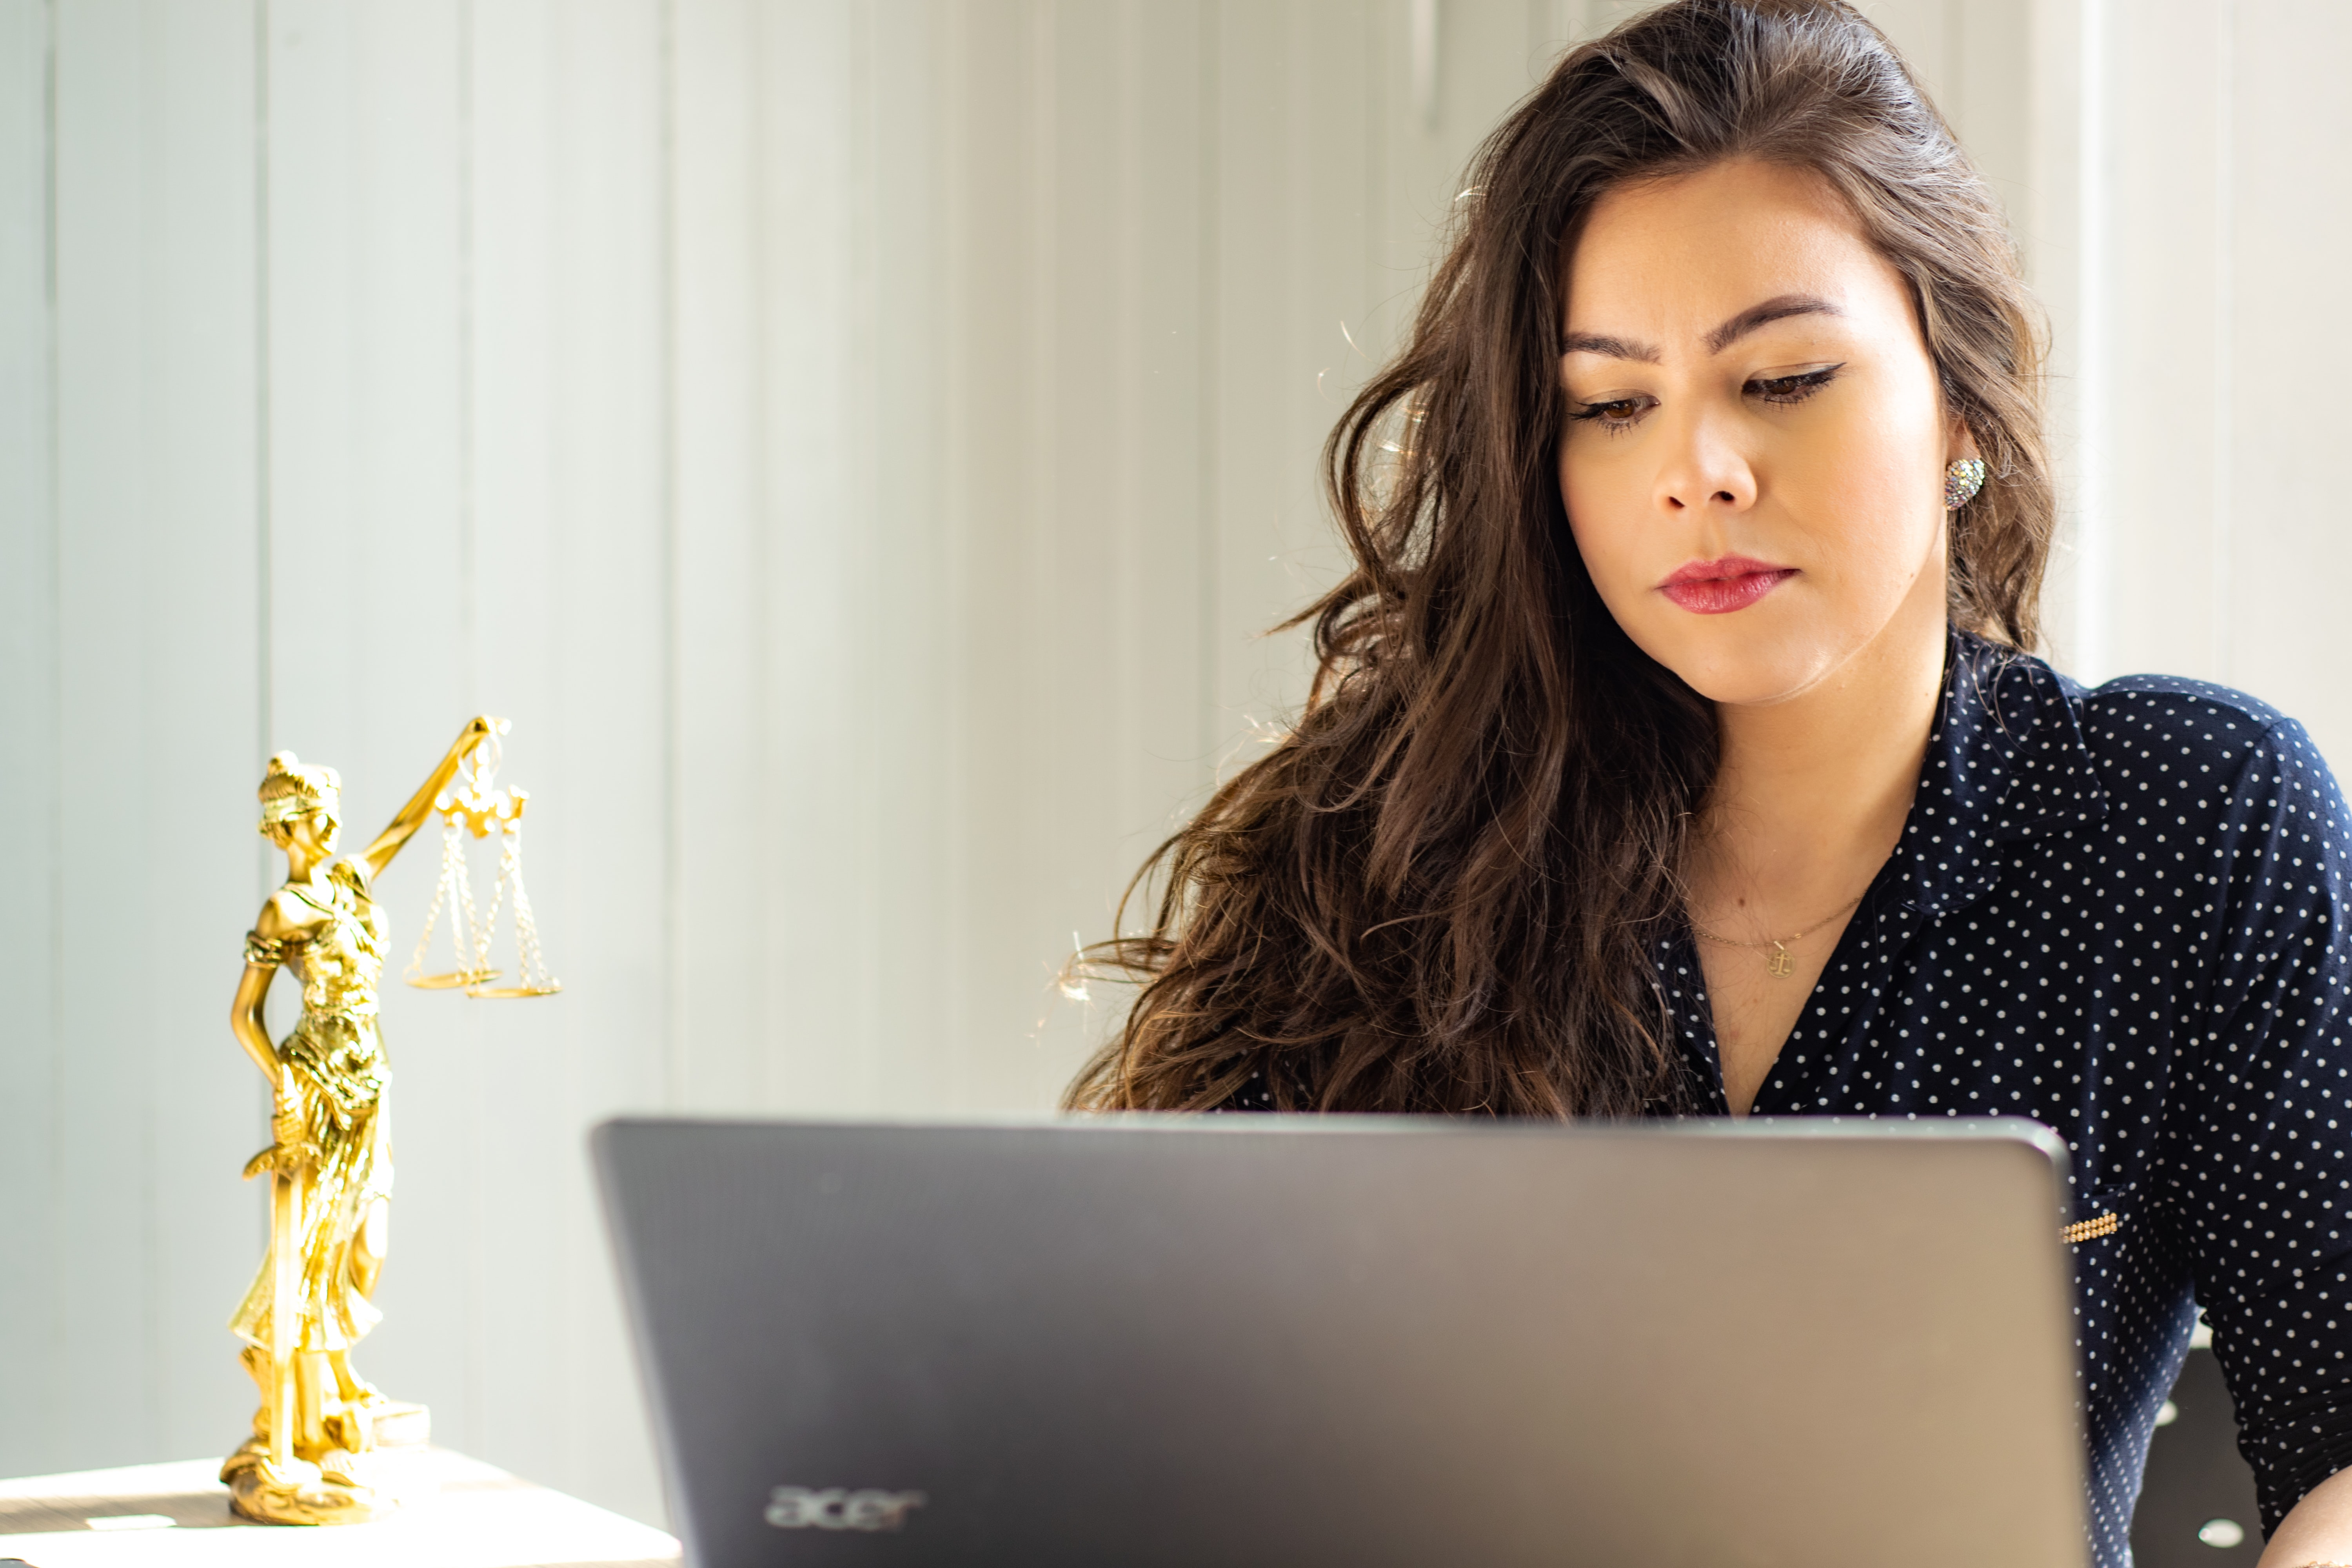 Women sat a a laptop with a gold ornament of justice on her desk